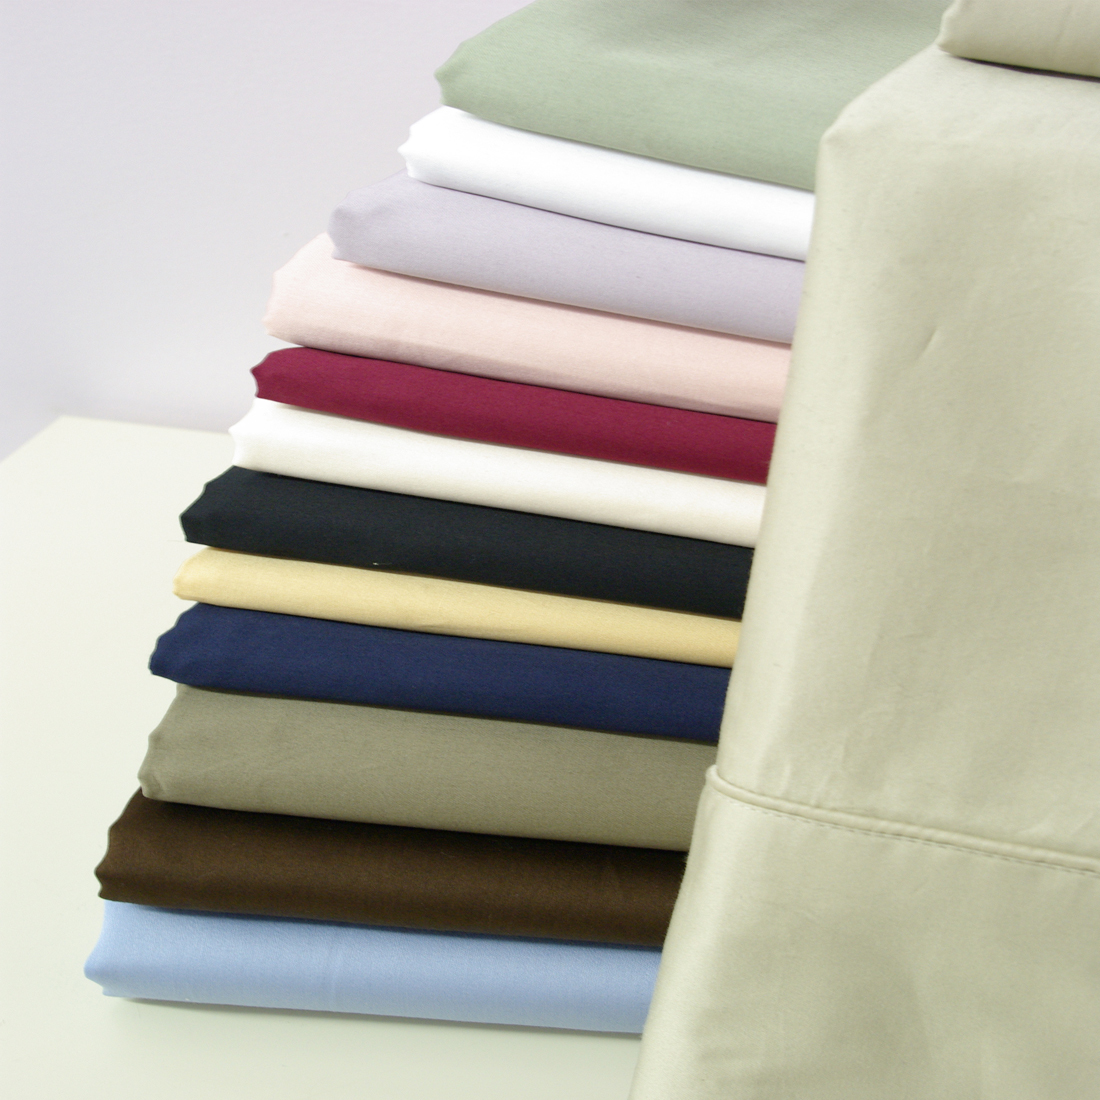 Royal Tradition. 550 Thread count Solid Egyptian cotton sheets. Wrap yourself in the Softness of the luxurious 550 Thread count, 100% Egyptian cotton sheets like those found in World Class Hotels. Imported from the Land of Cleopatra, these fine luxury bed linens are carfted from long staple Giza cotton grown in the Lush Nile River Valley since the time of the Pharaohs. Comfort, quality and opulence set our luxury bedding in a class above the rest. Elegent yet durable, their softness is enhanced with each washing.